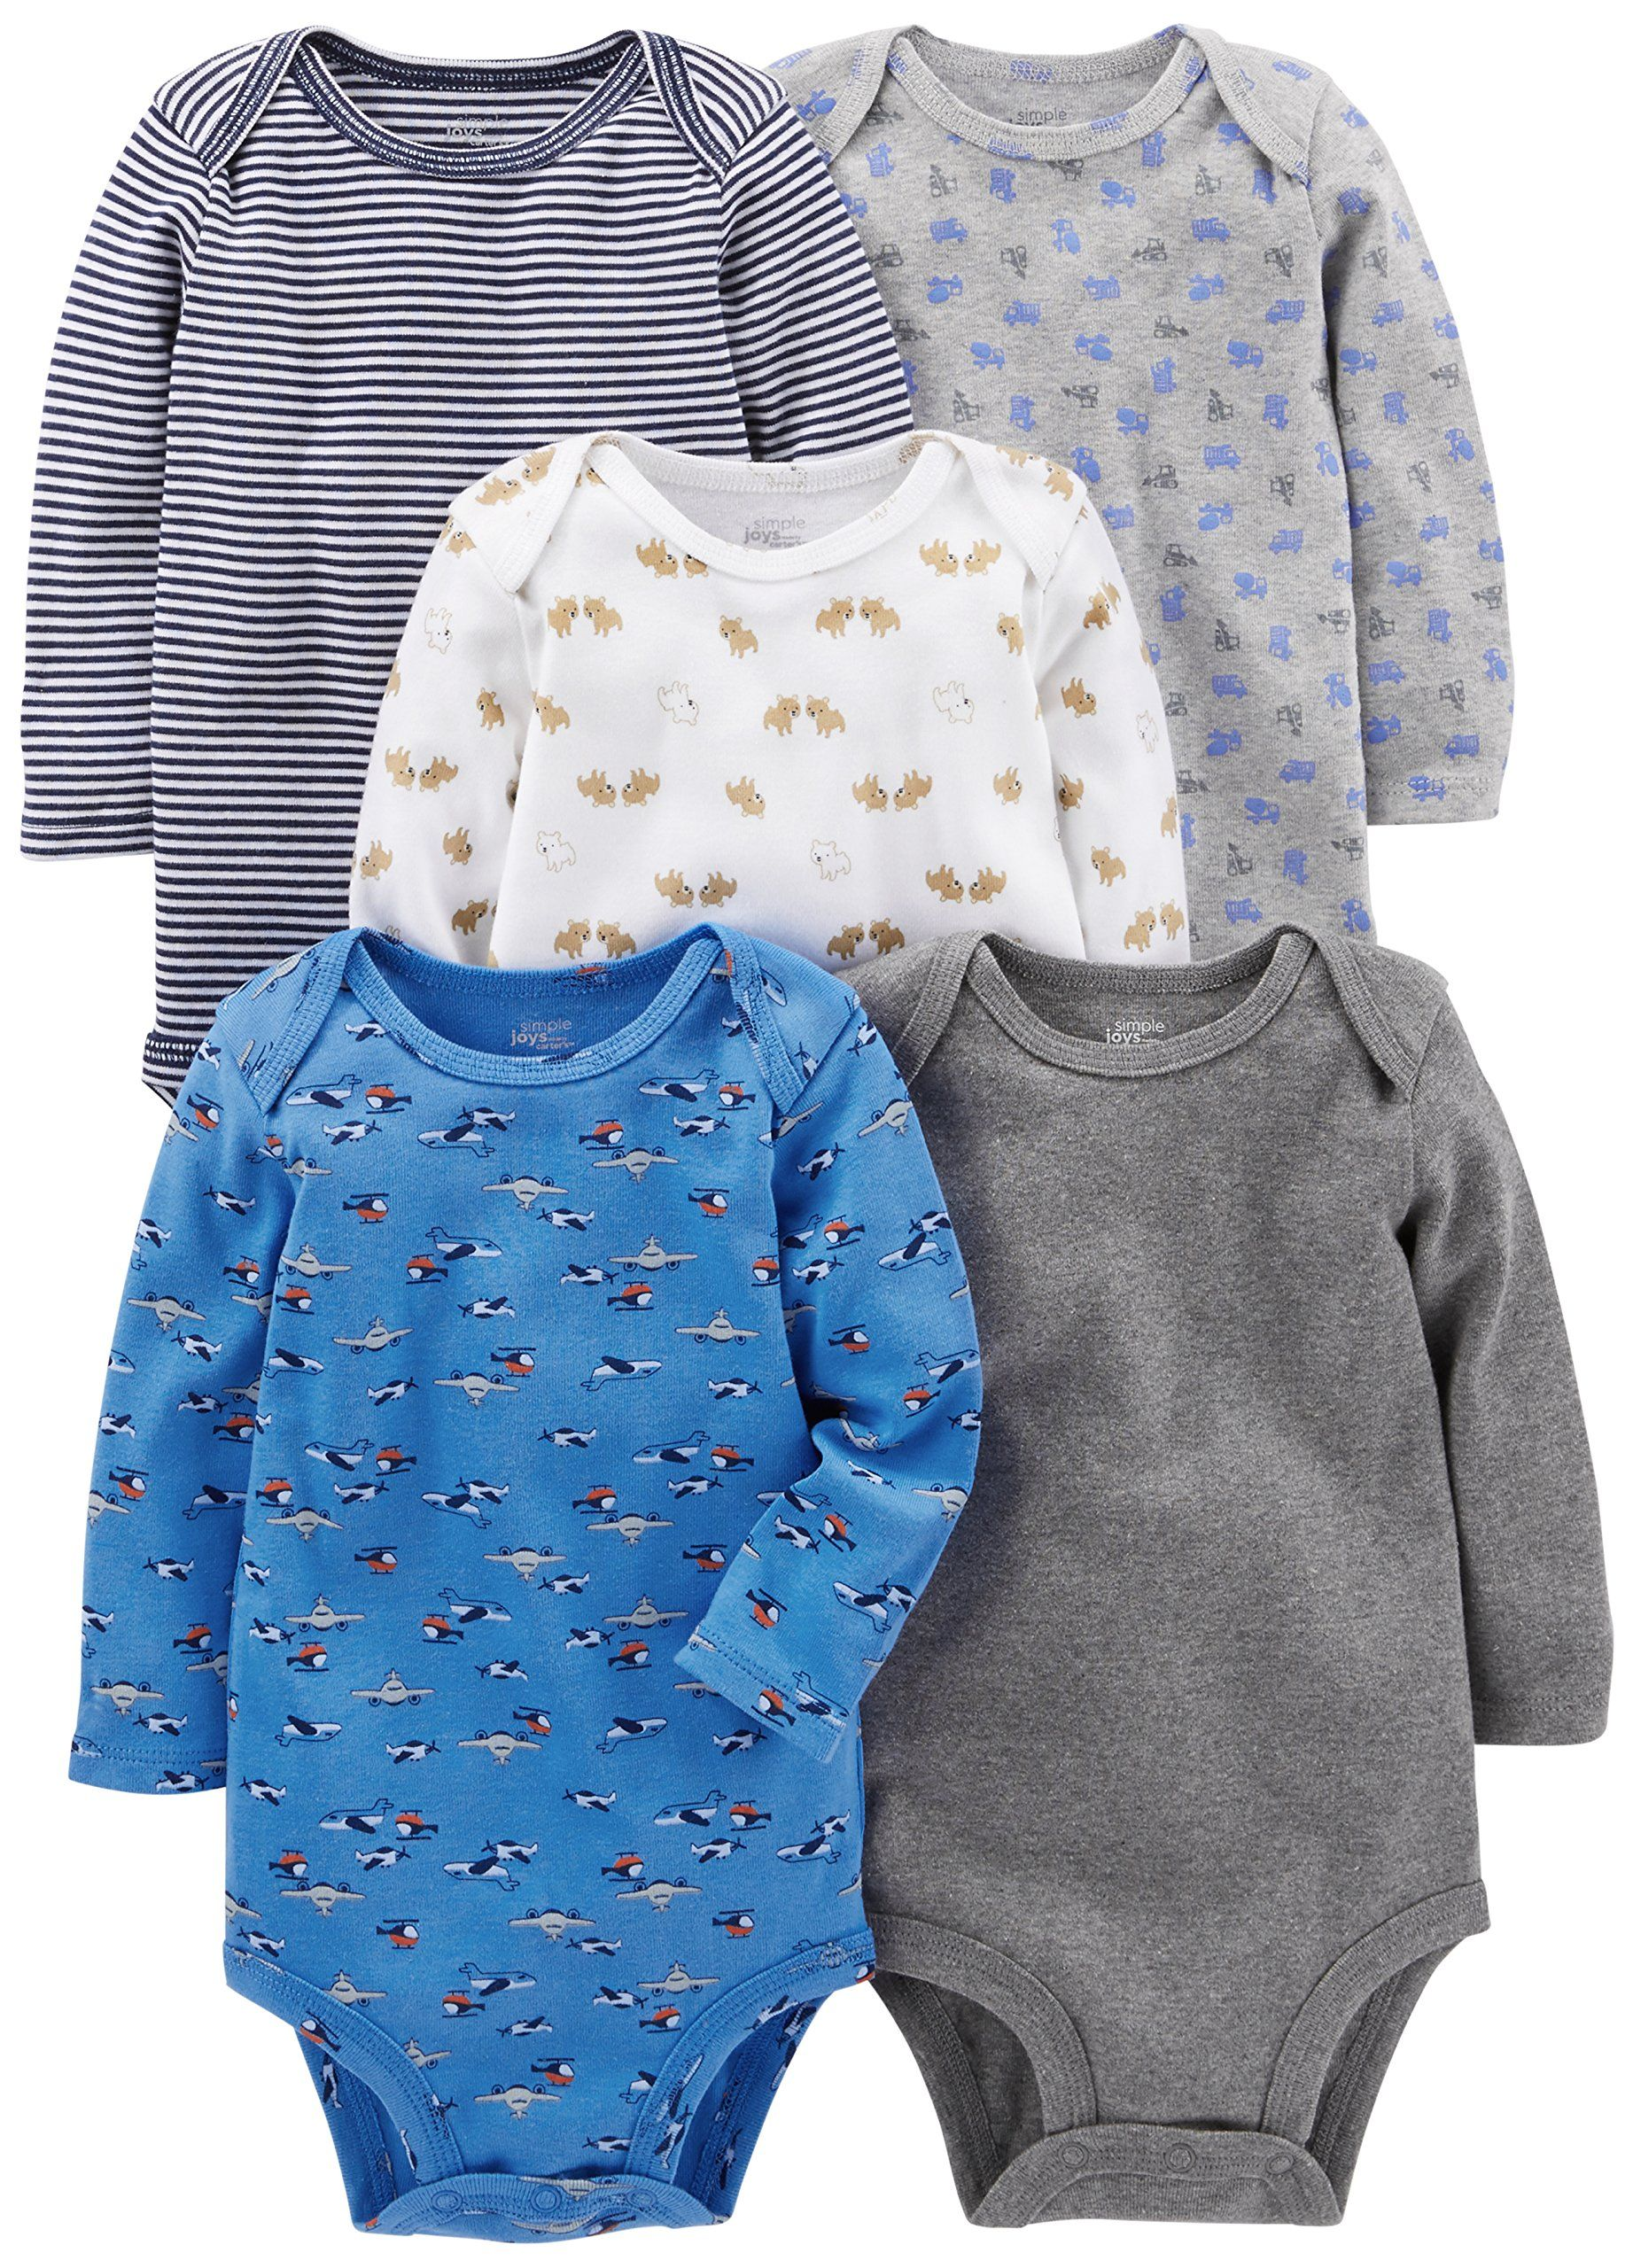 Simple Joys by Carters Baby Boys 5-Pack Long-Sleeve Bodysuit